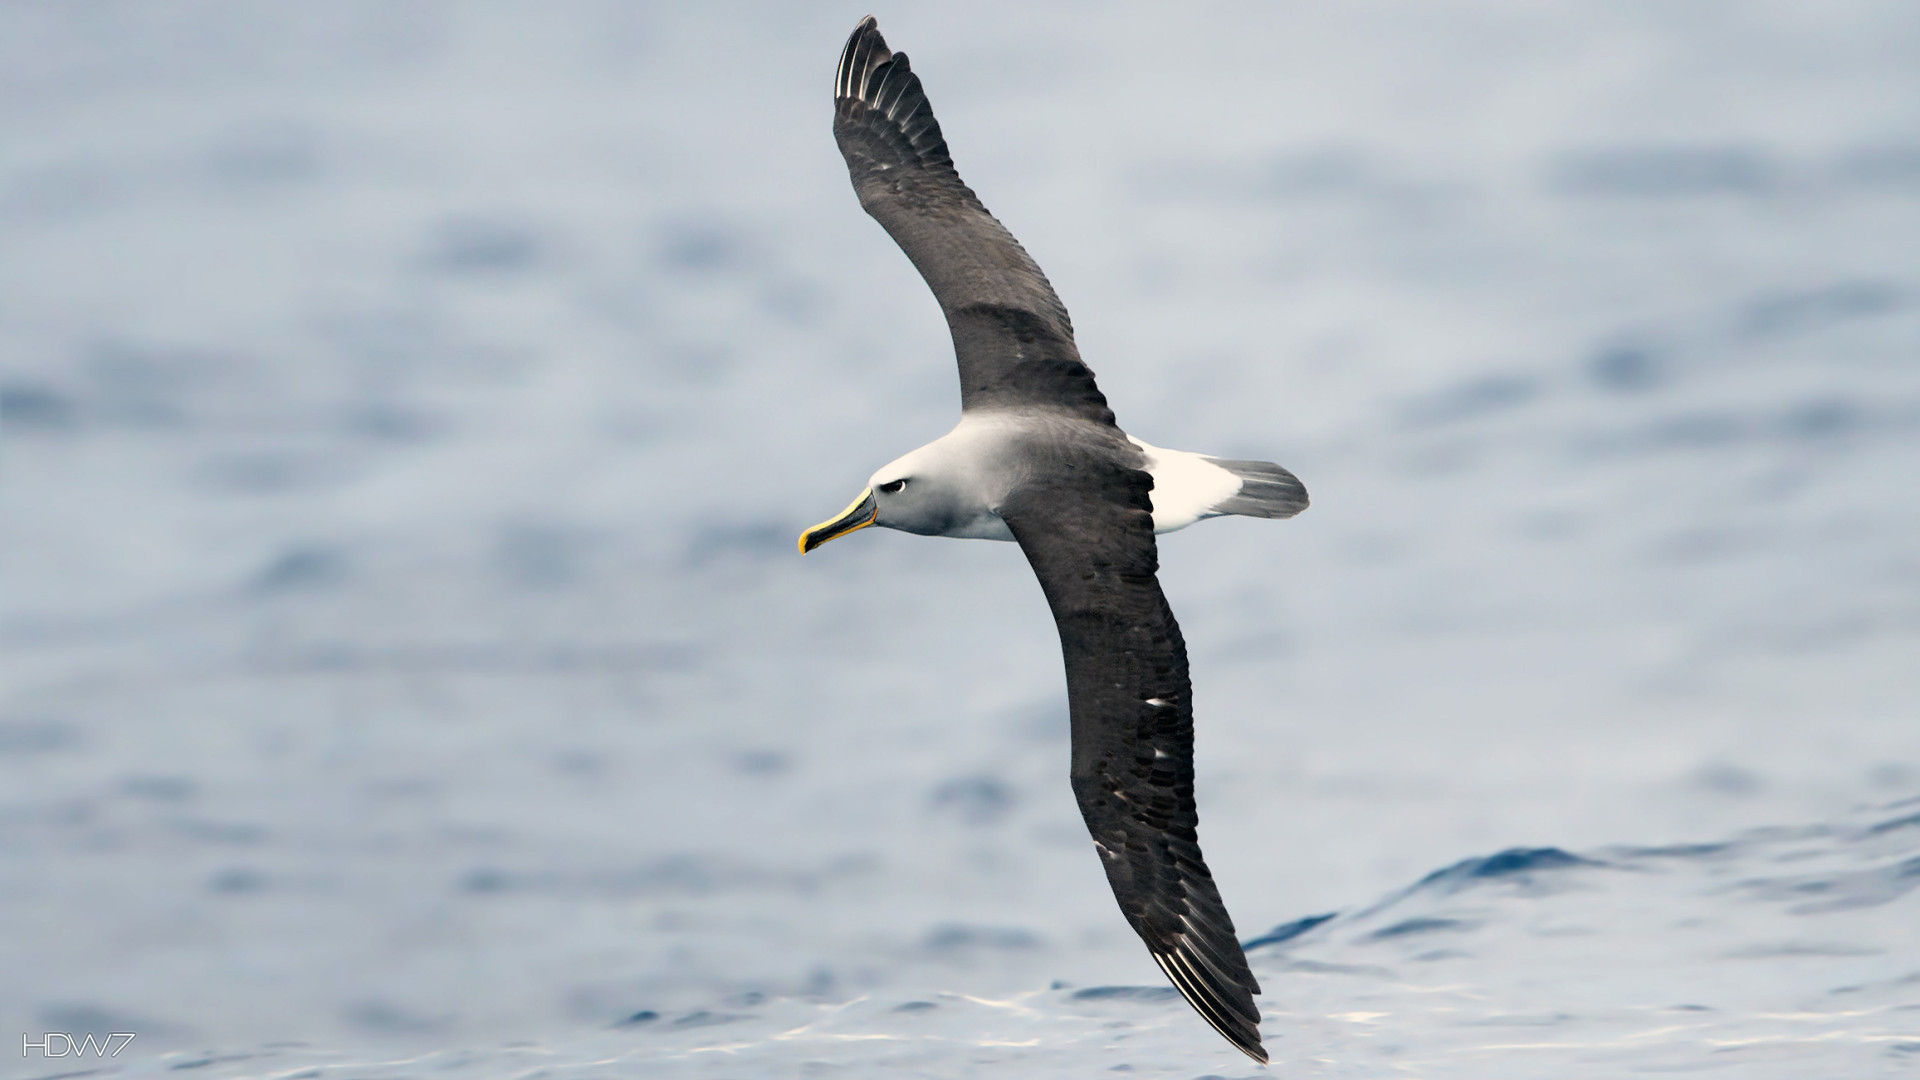 albatross buller bird flying dark wings